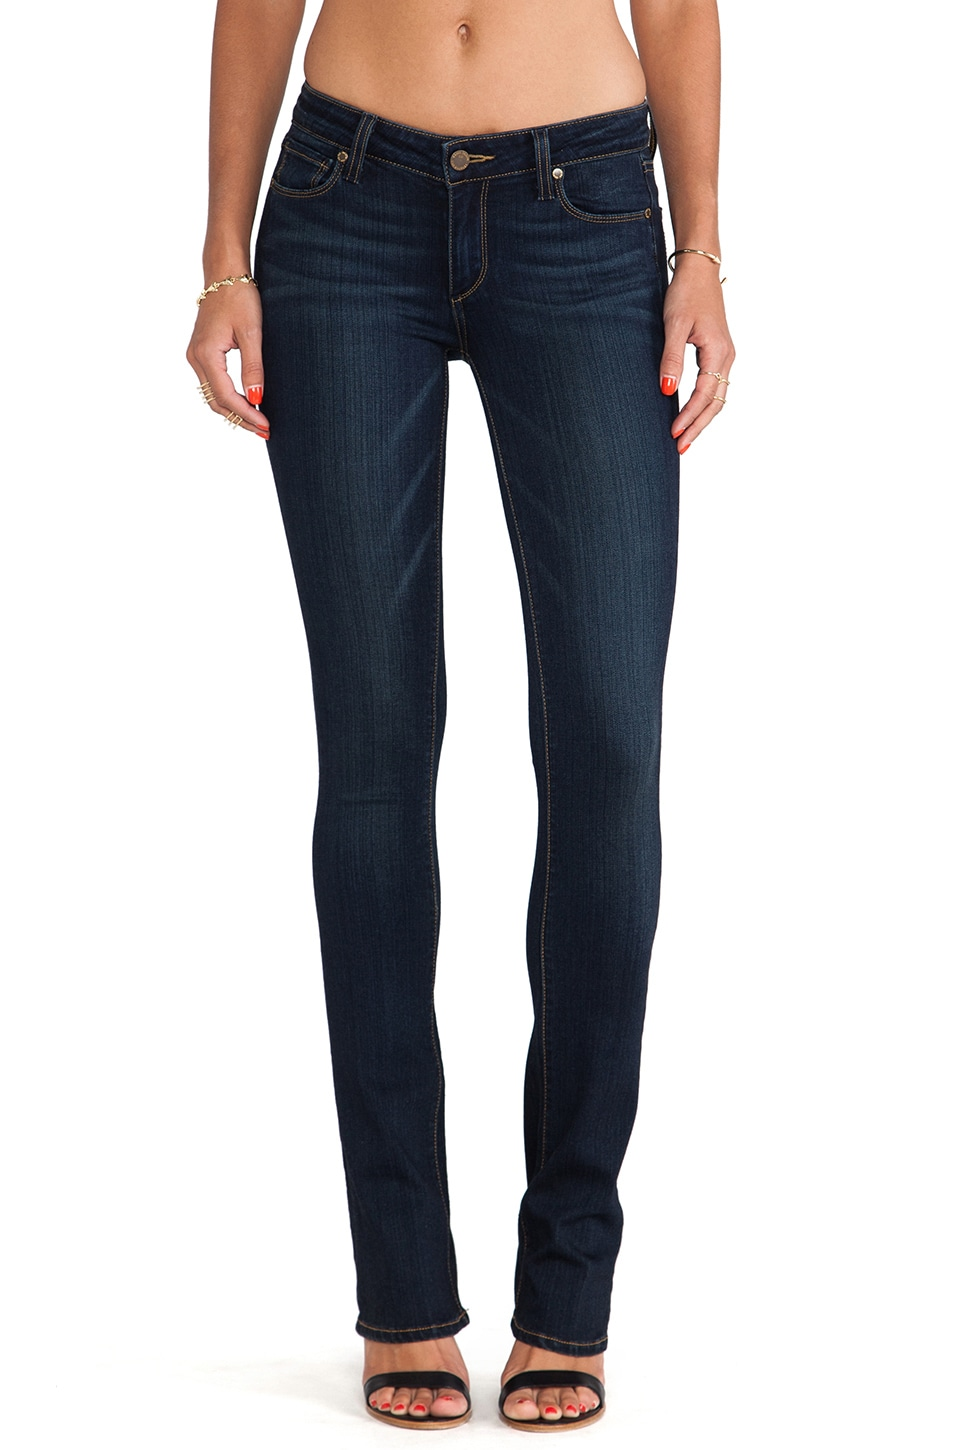 Paige Denim Manhattan Boot in Armstrong